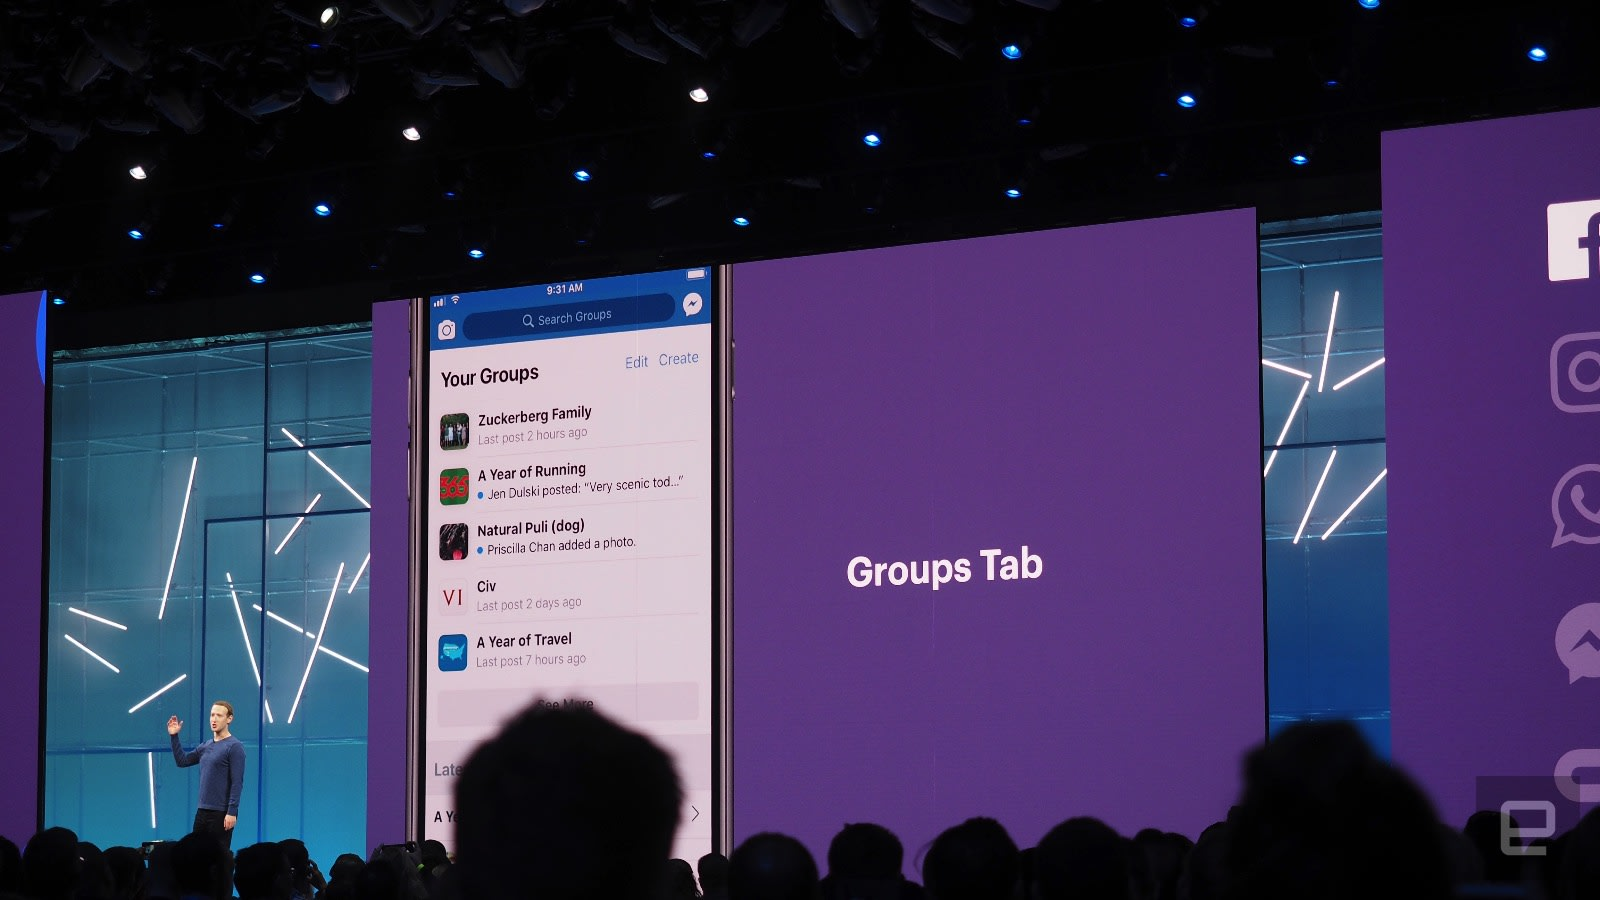 Facebook is moving groups into the spotlight big4all edgar alvarezengadget fandeluxe Choice Image